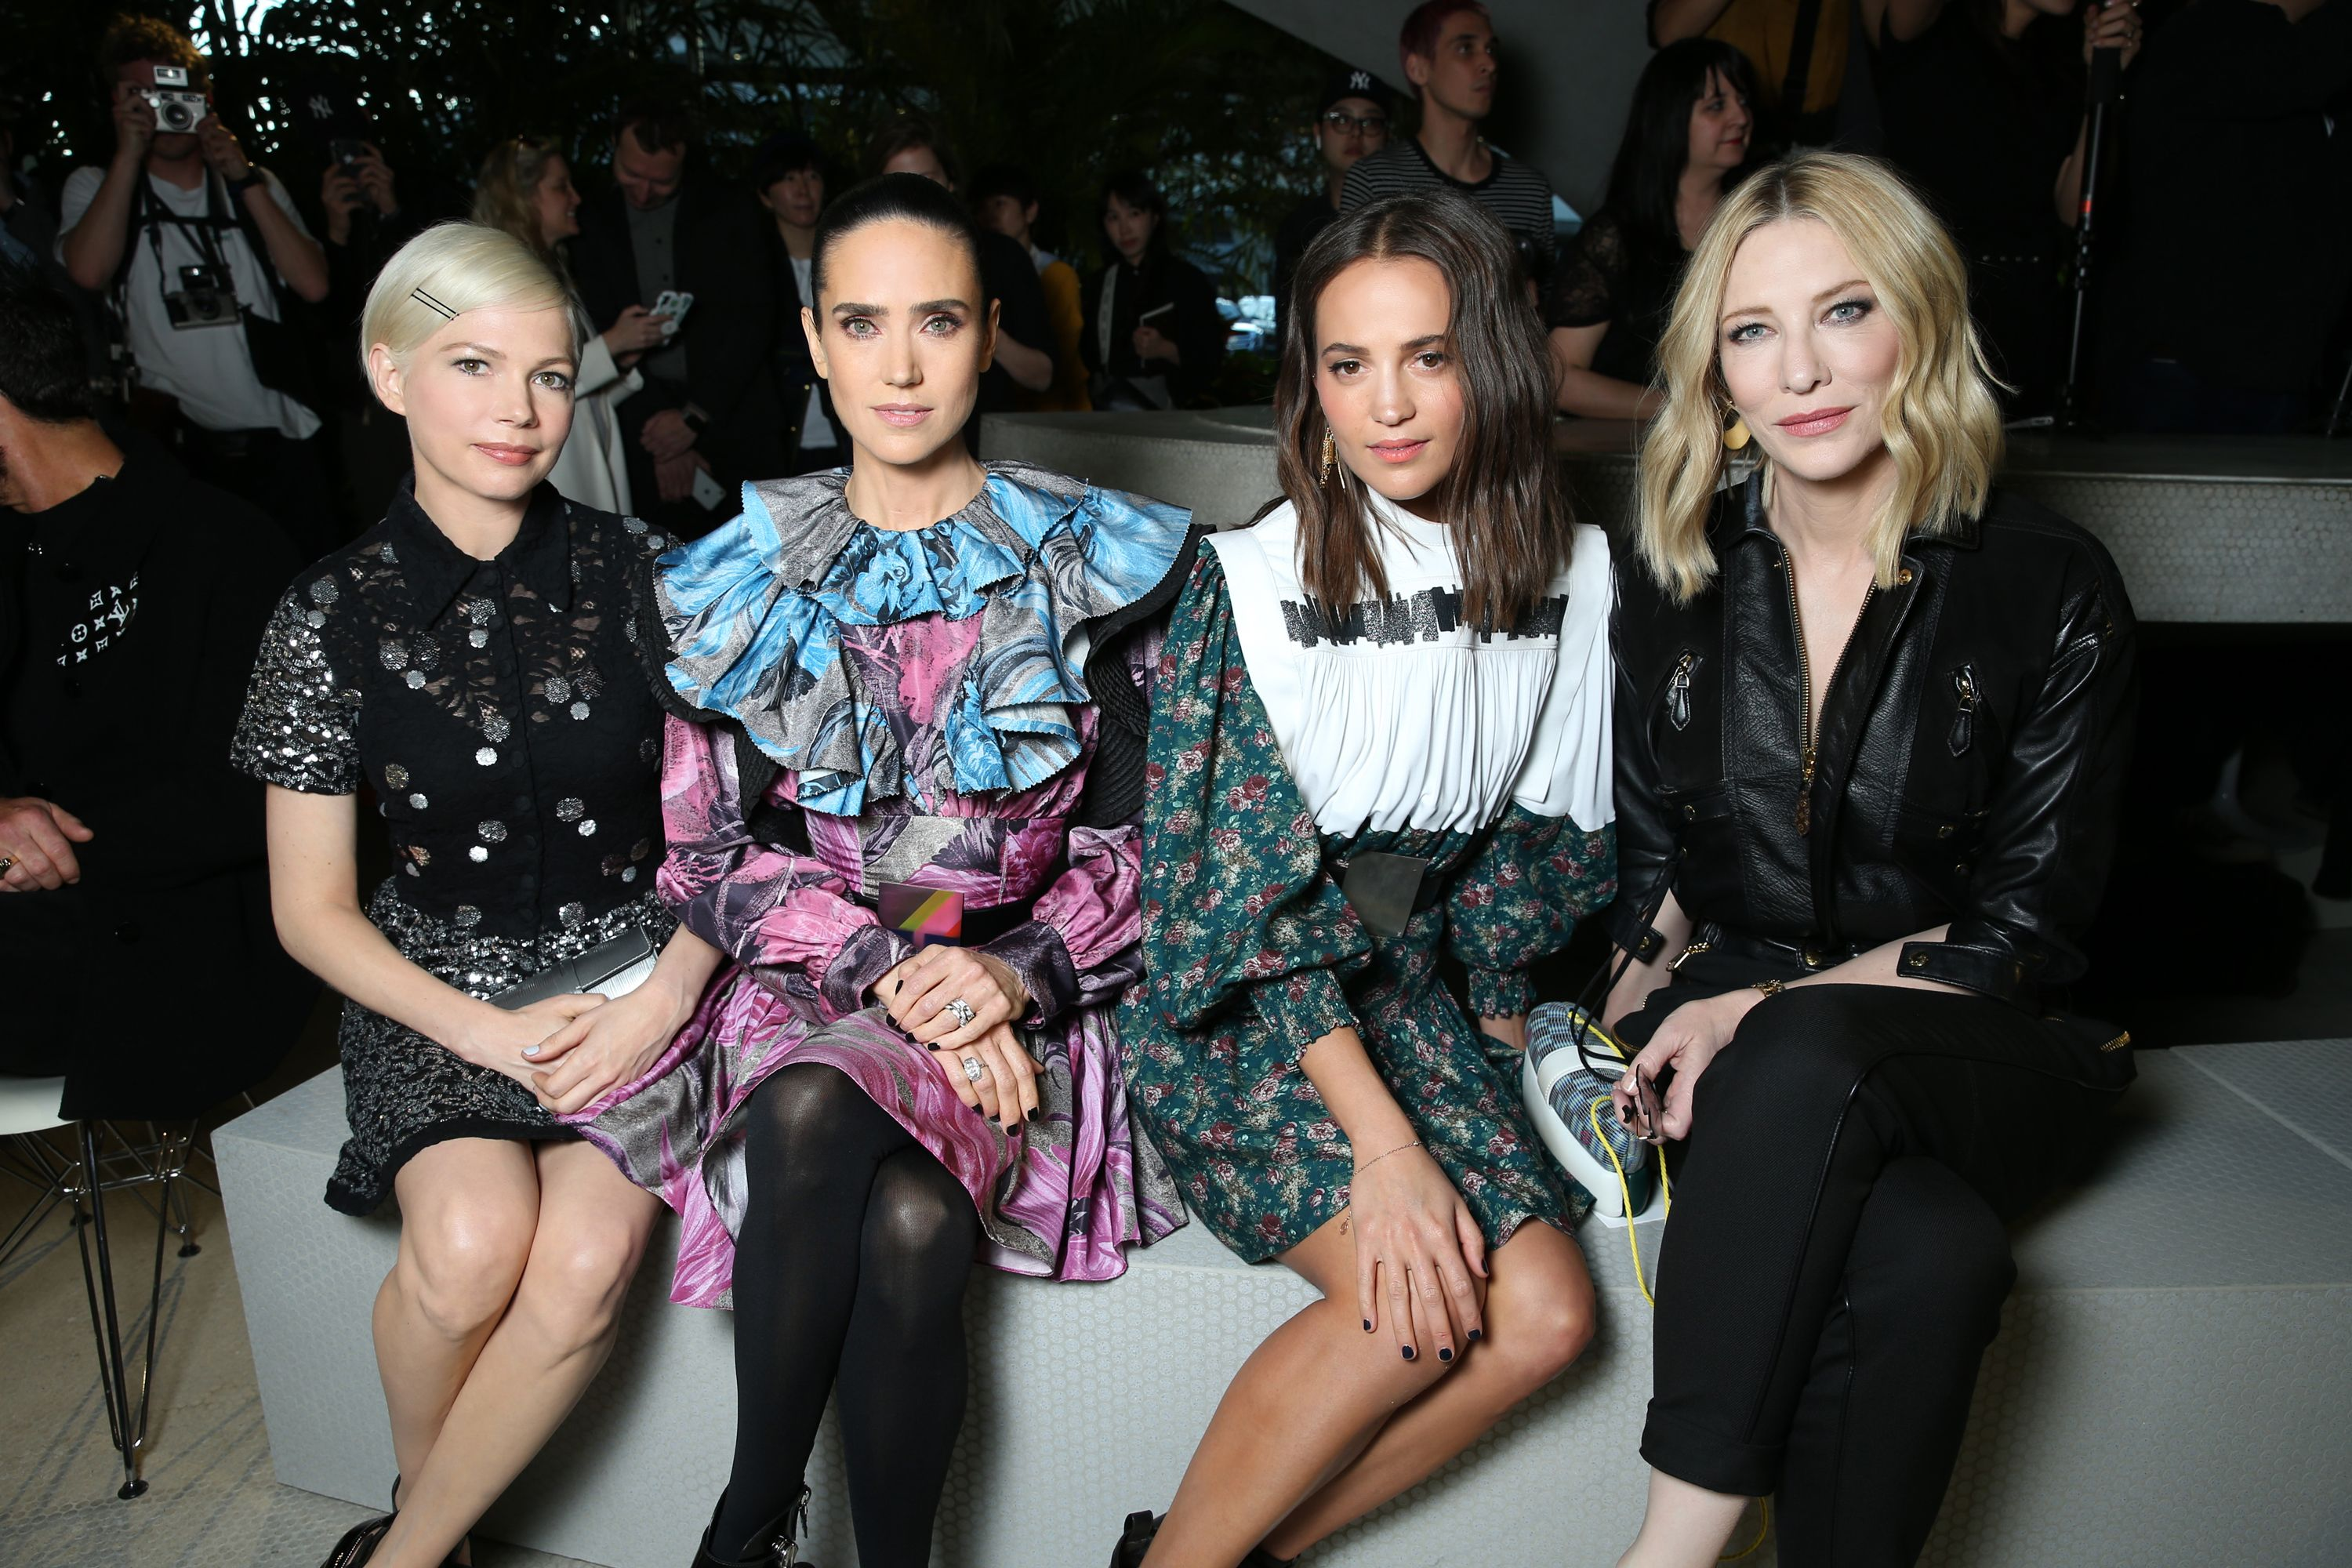 Michelle Williams, Jennifer Connelly, Alicia Vikander, and Cate Blanchett in the front row.